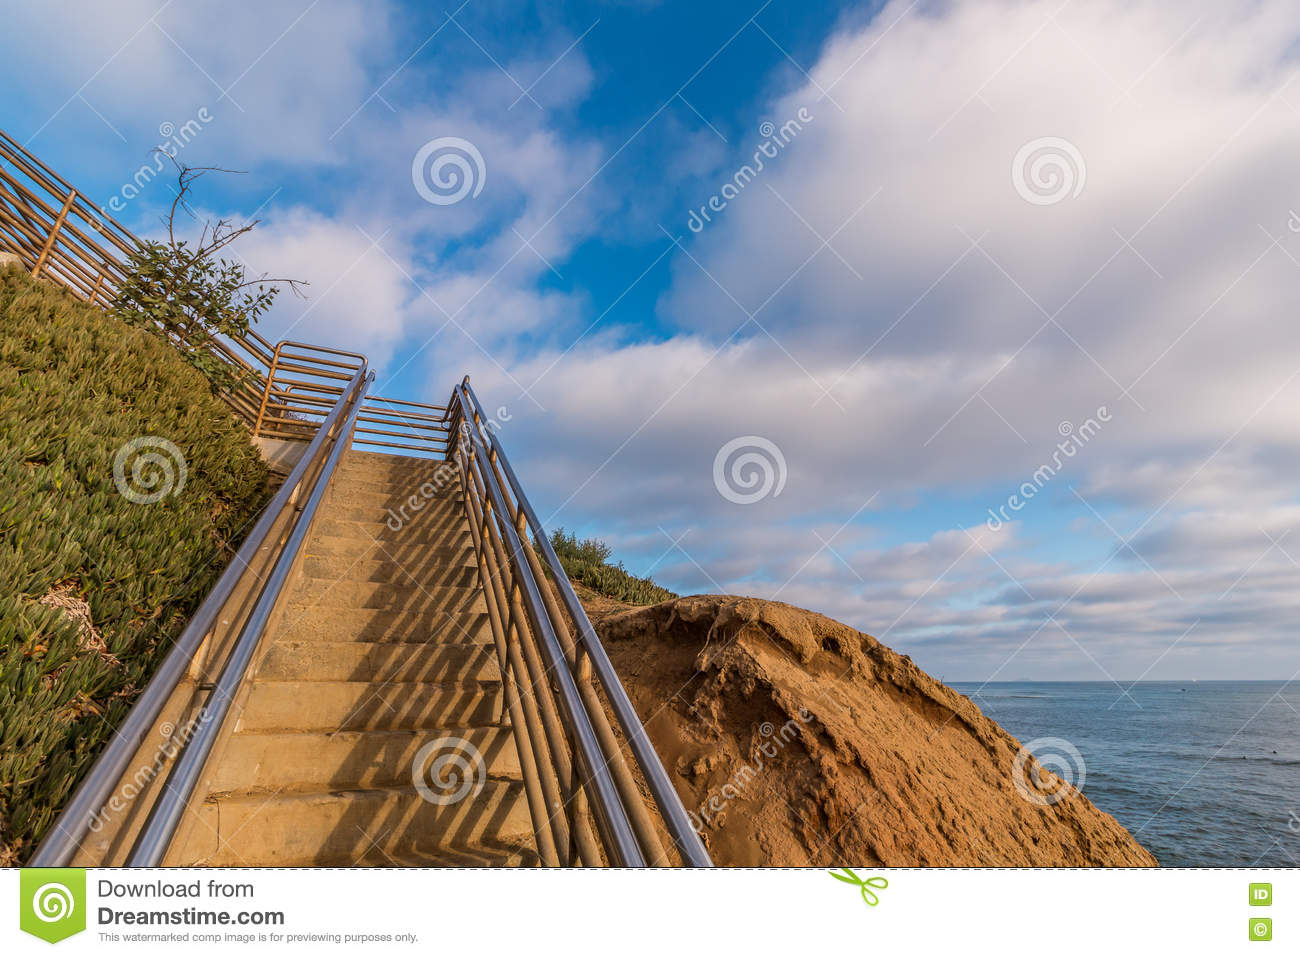 Staircase at Ladera Street at Sunset Cliffs in San Diego